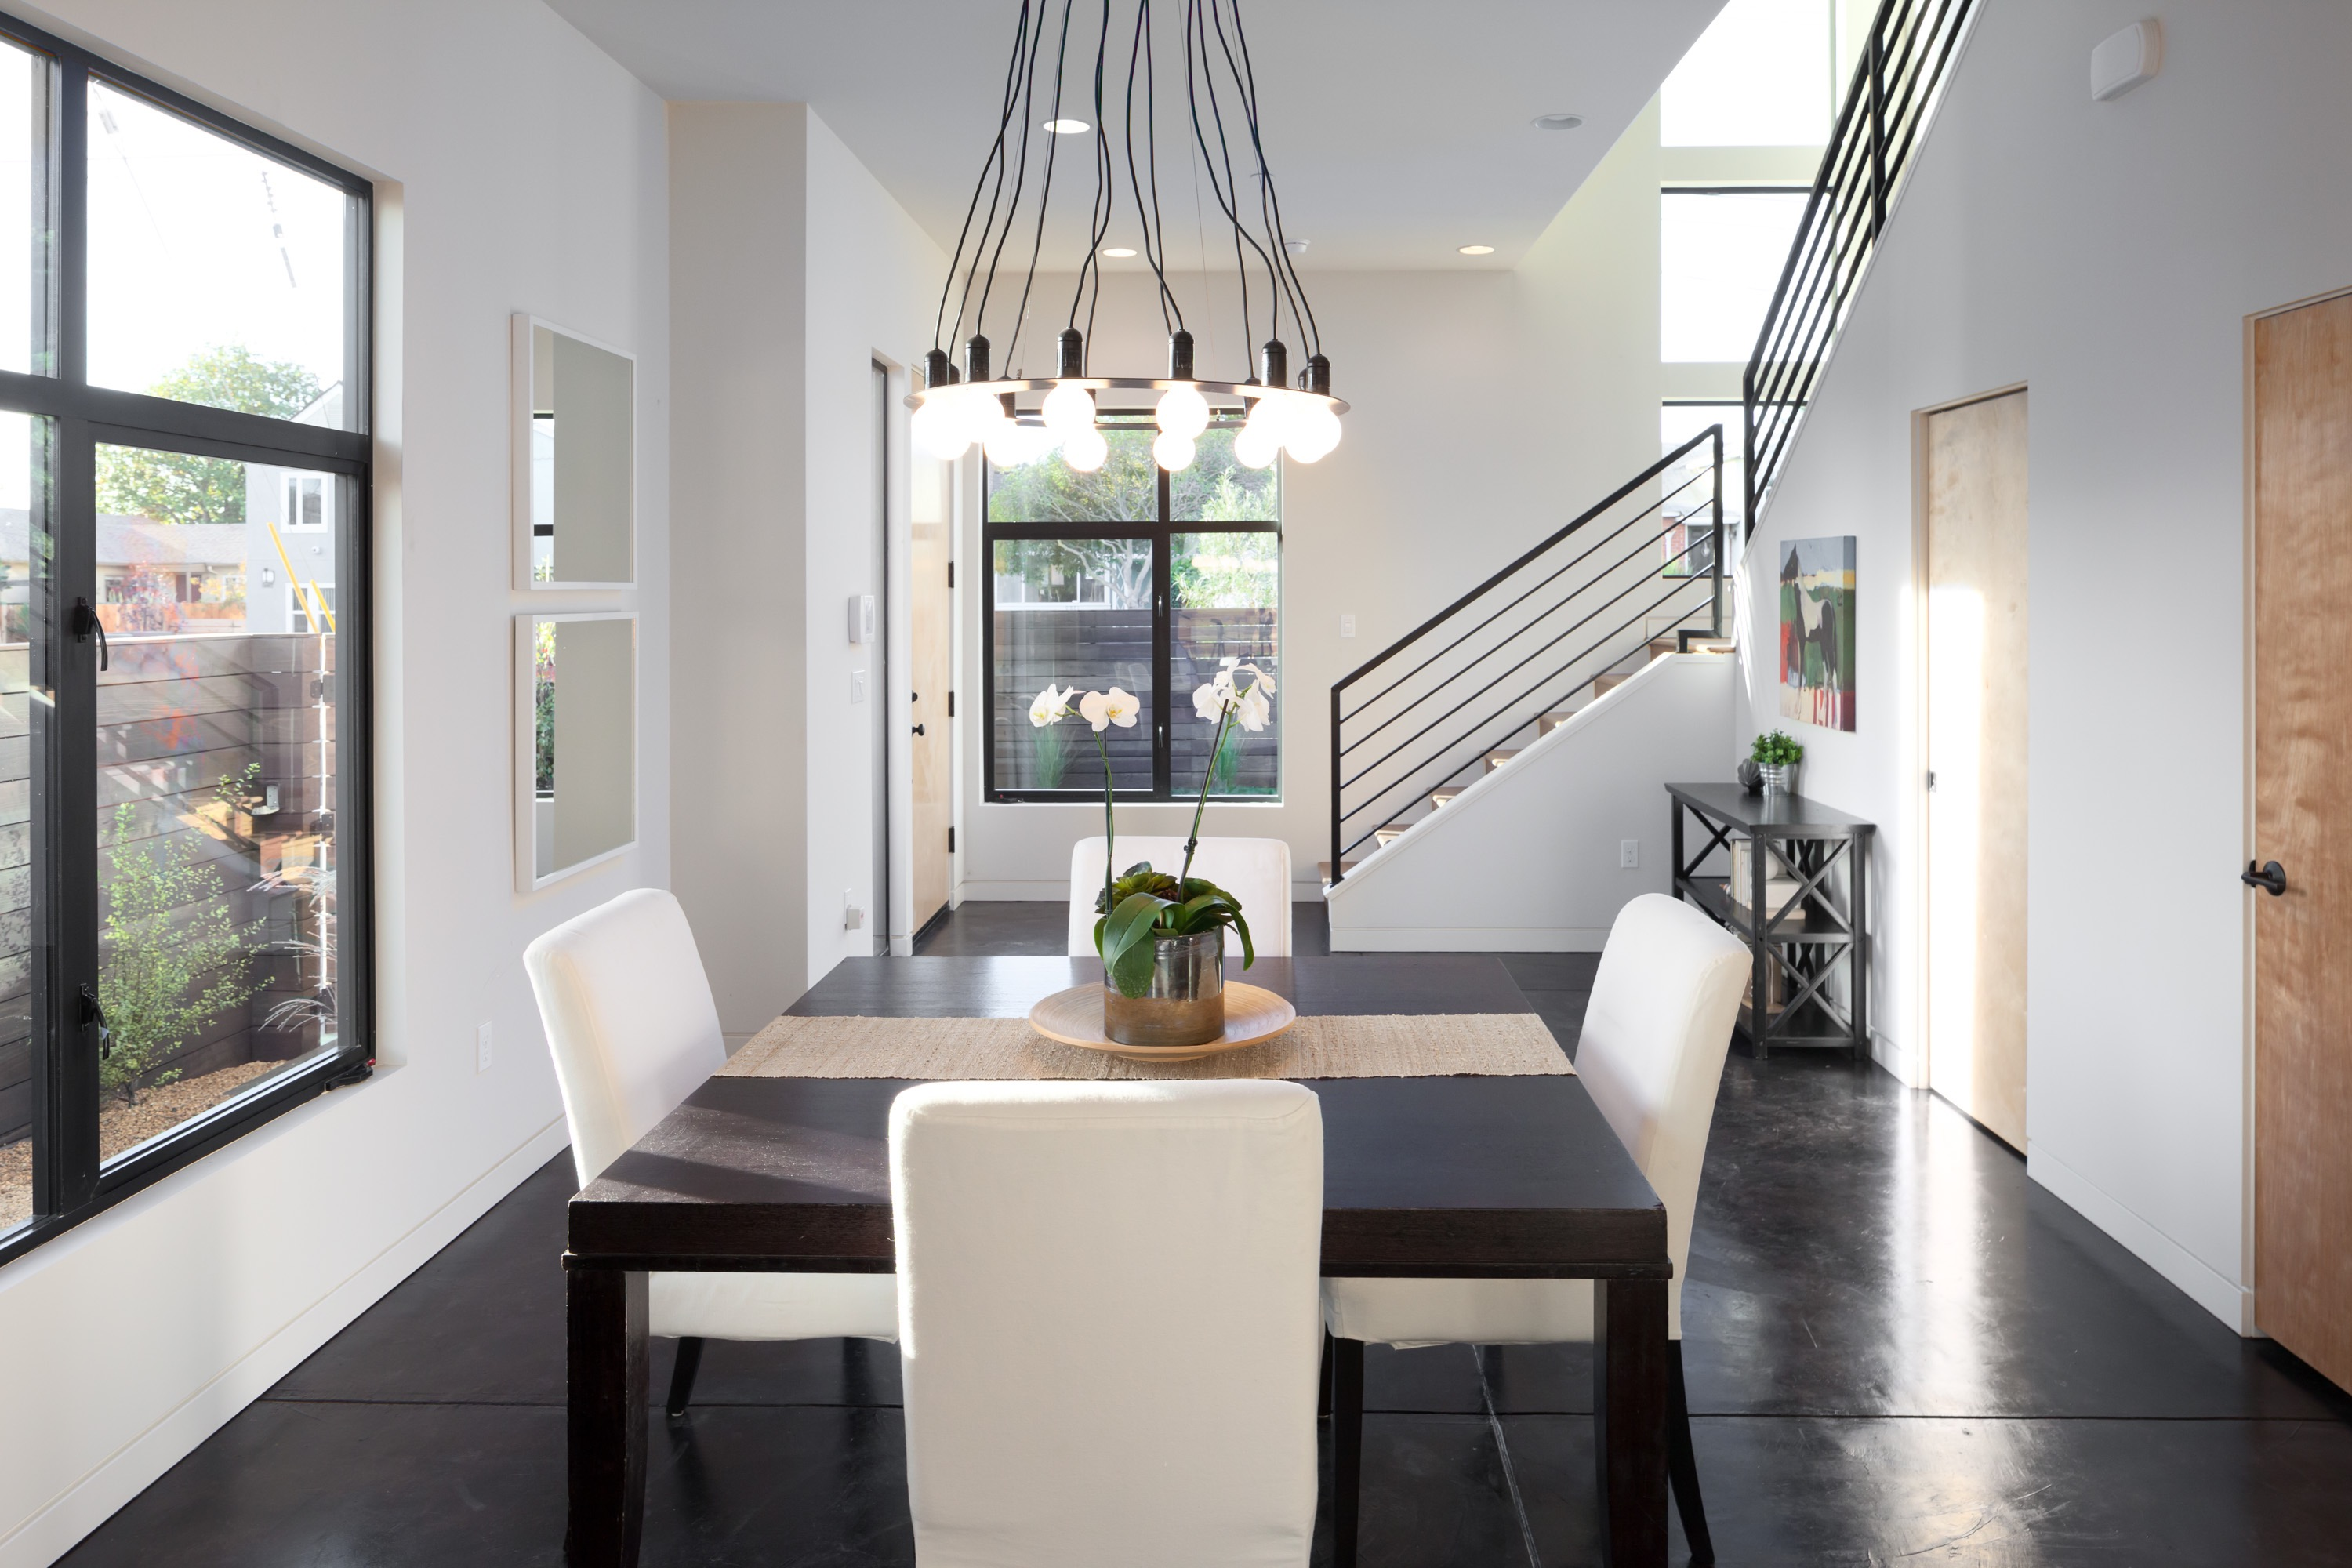 Small Modern Dining Room With Square Table And 4 Chairs (Image 29 of 30)